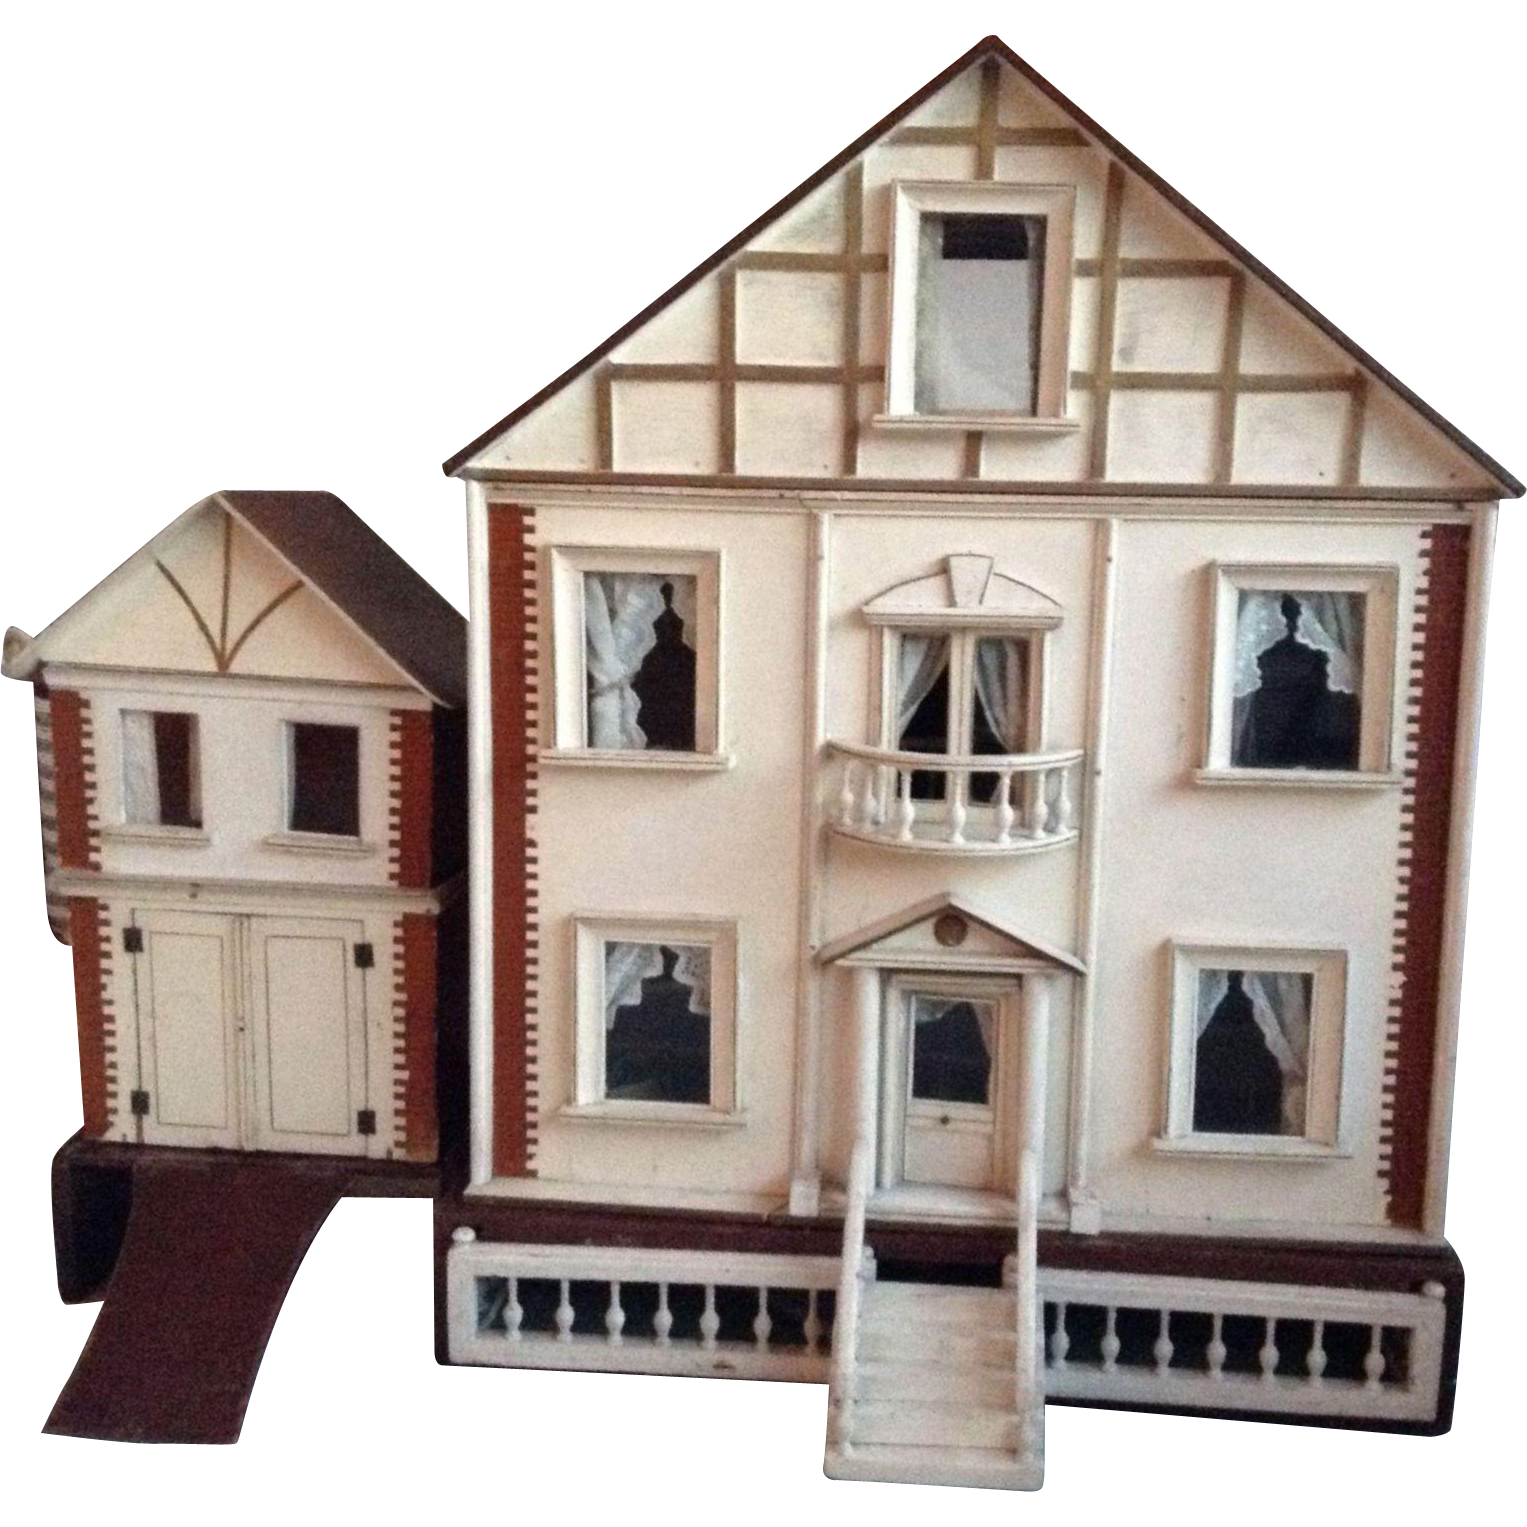 a doll s house ending Analysis of the opening scenes of a doll's house the very first scene in a doll's house, opens with extremely precise and detailed stage directions.